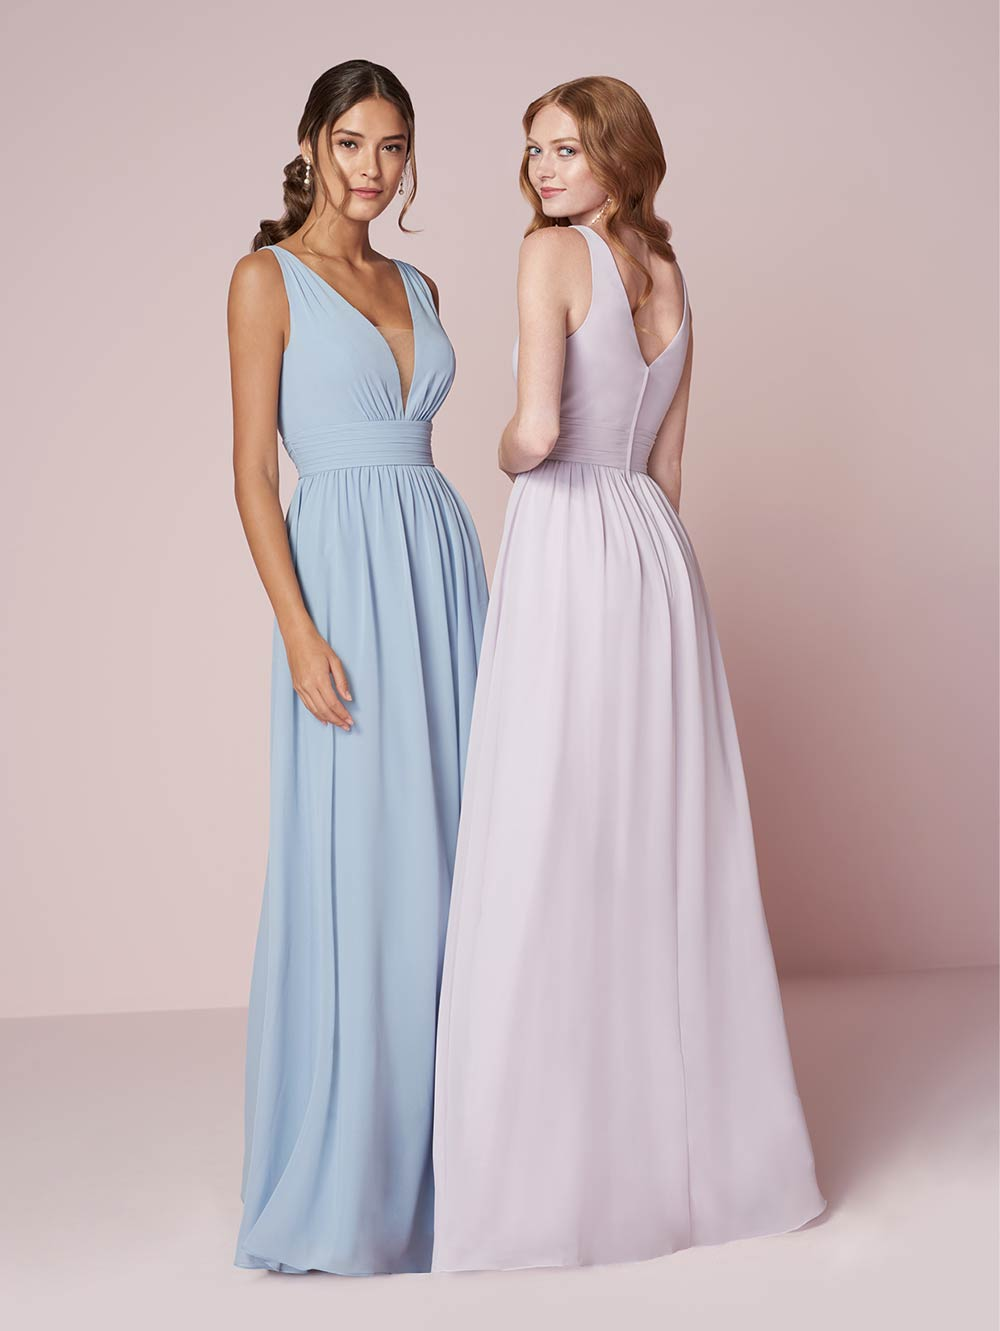 bridesmaid-dresses-jacquelin-bridals-canada-27768